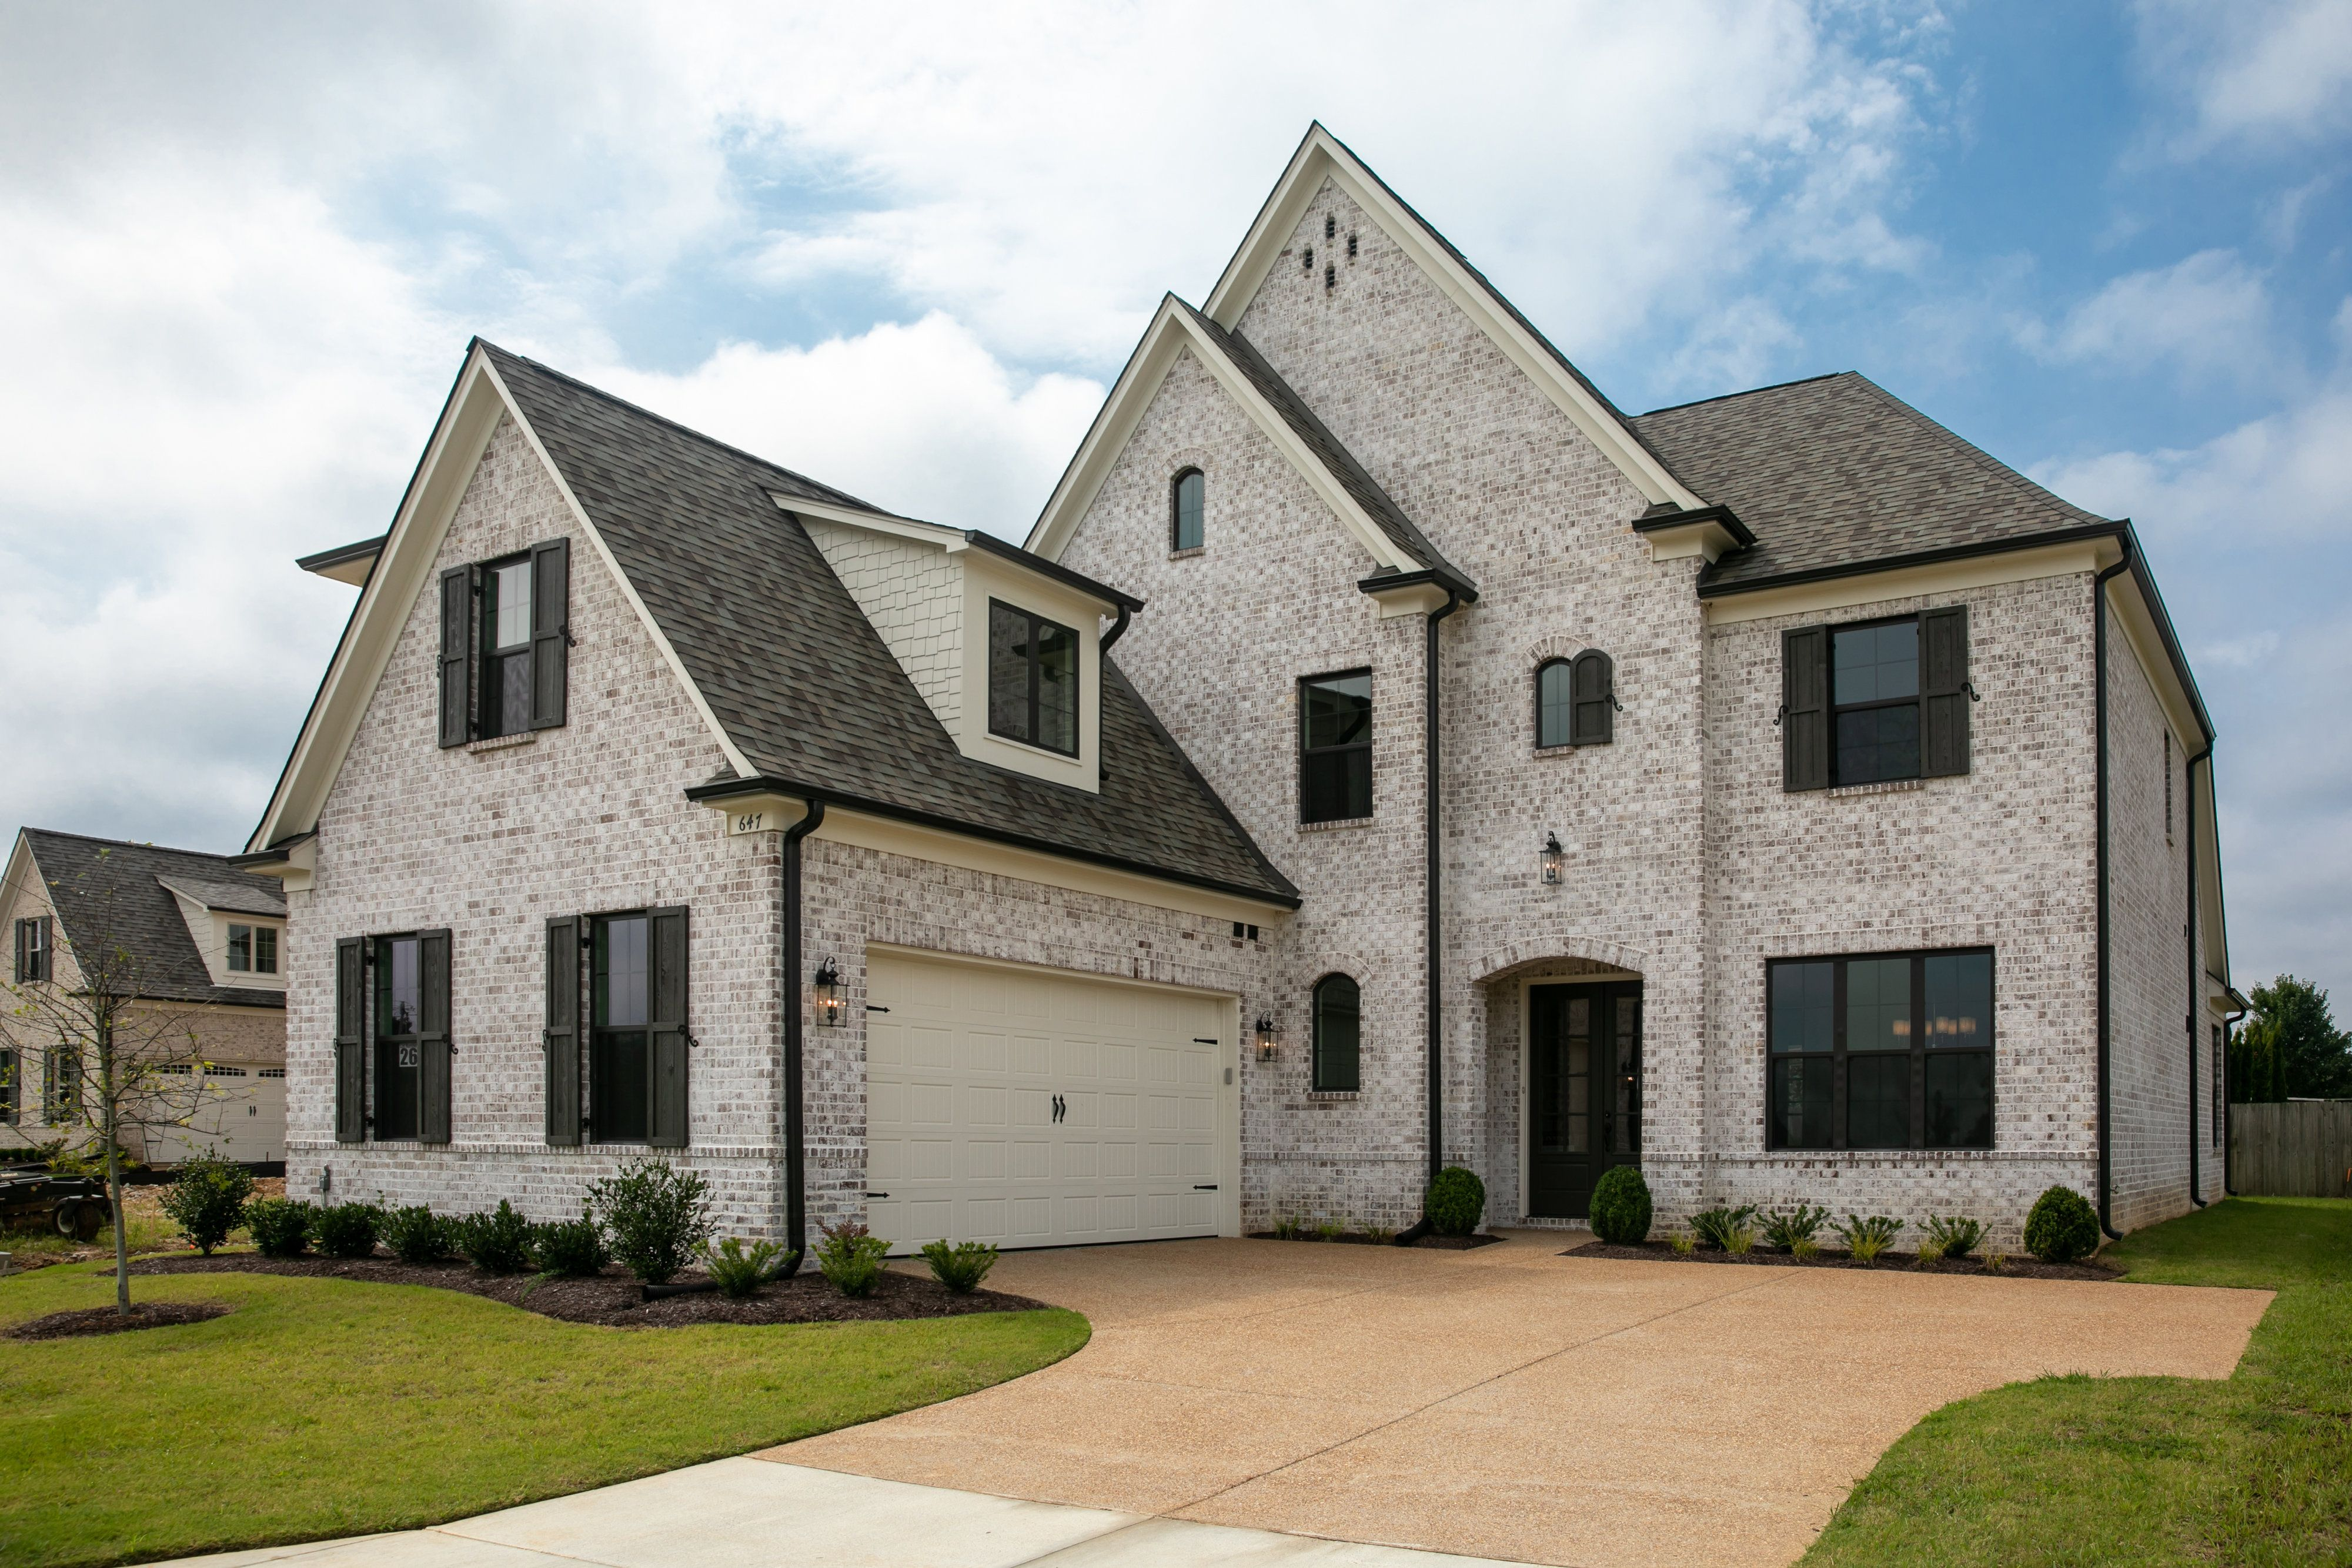 'Parkview' by Regency Homebuilders in Memphis